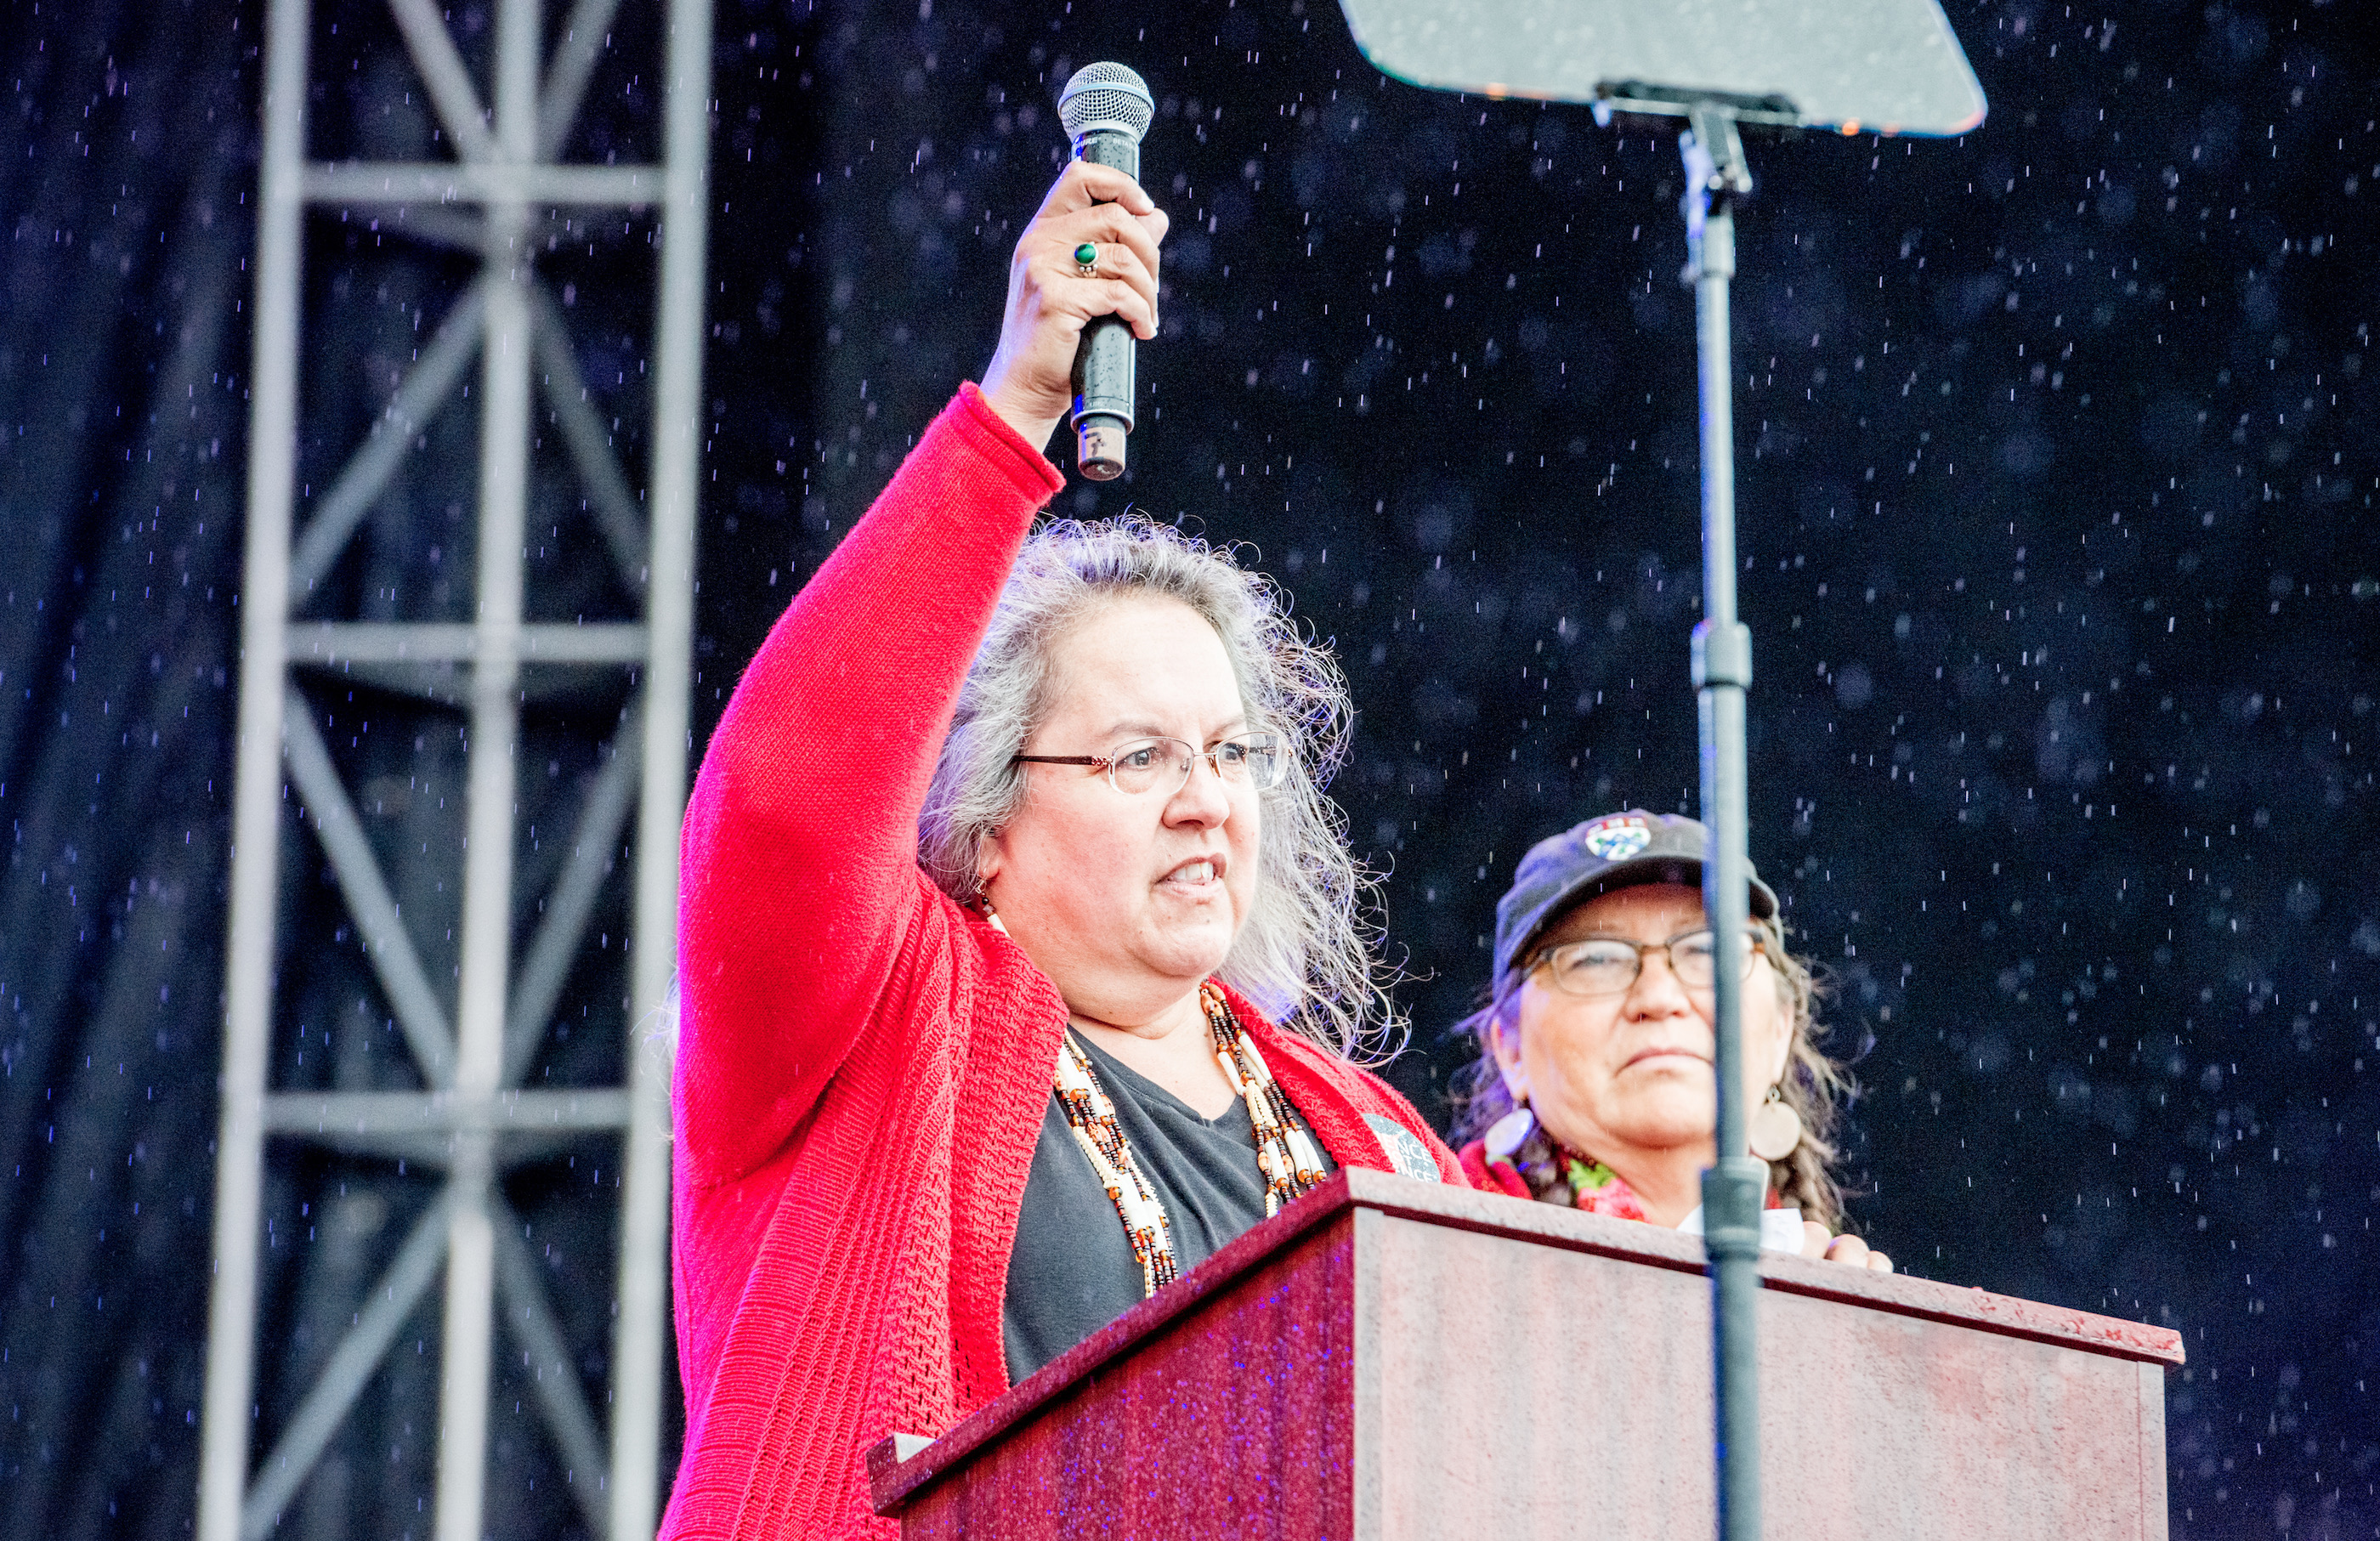 Terri Hansen: March for Indigenous Science reflects tribal knowledge